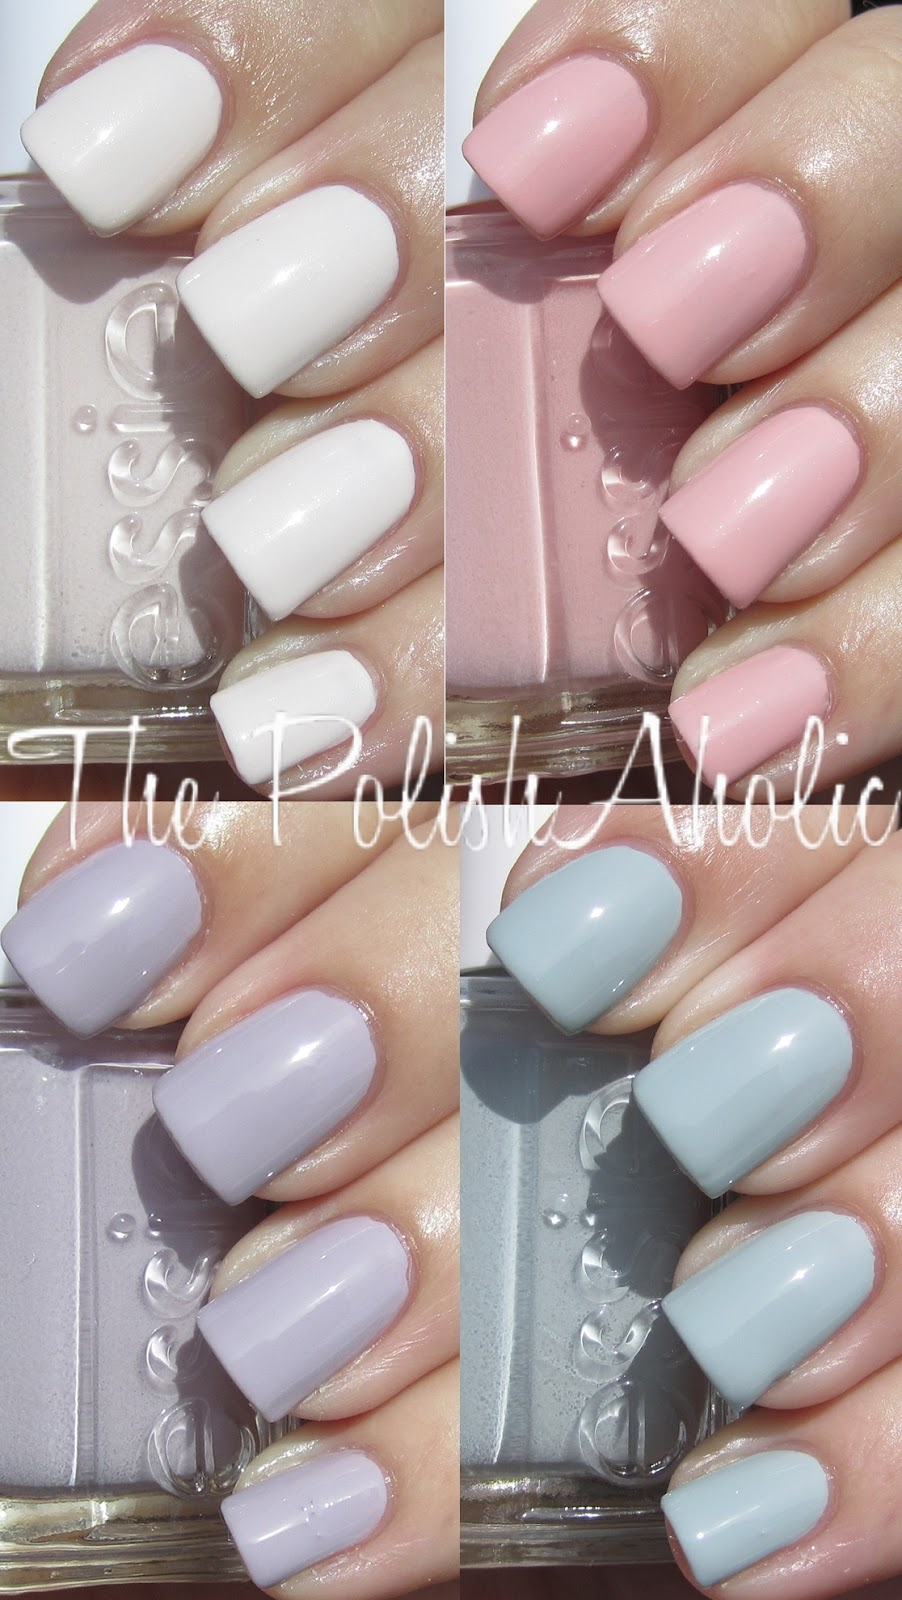 The PolishAholic: Essie Wedding 2012 Collection Swatches!